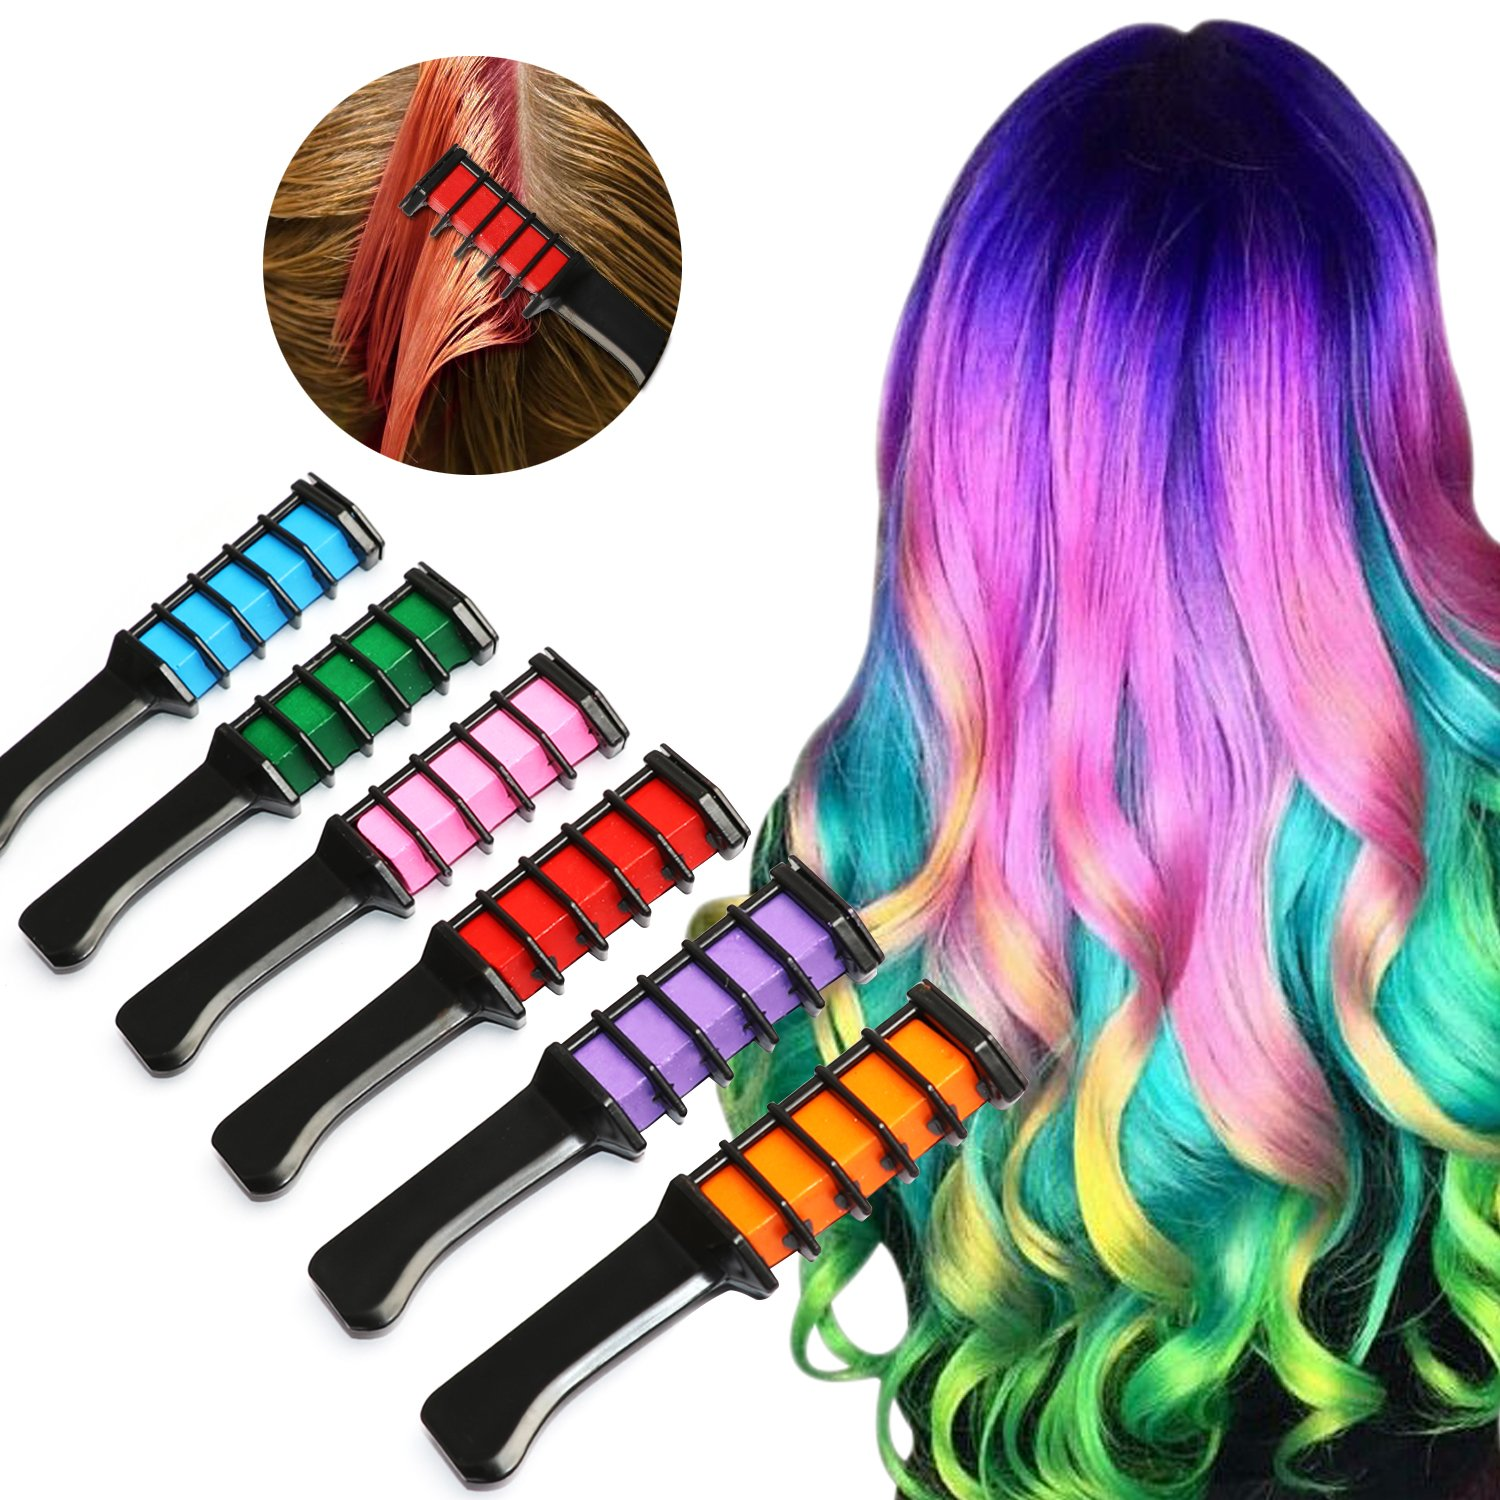 Hair Chalk Comb 6 Piece Metallic Glitter Temporary Hair Color Edge Chalkers Built in Sealant Upgrade Non-Toxic Rainbow Colored for All Hair Colors